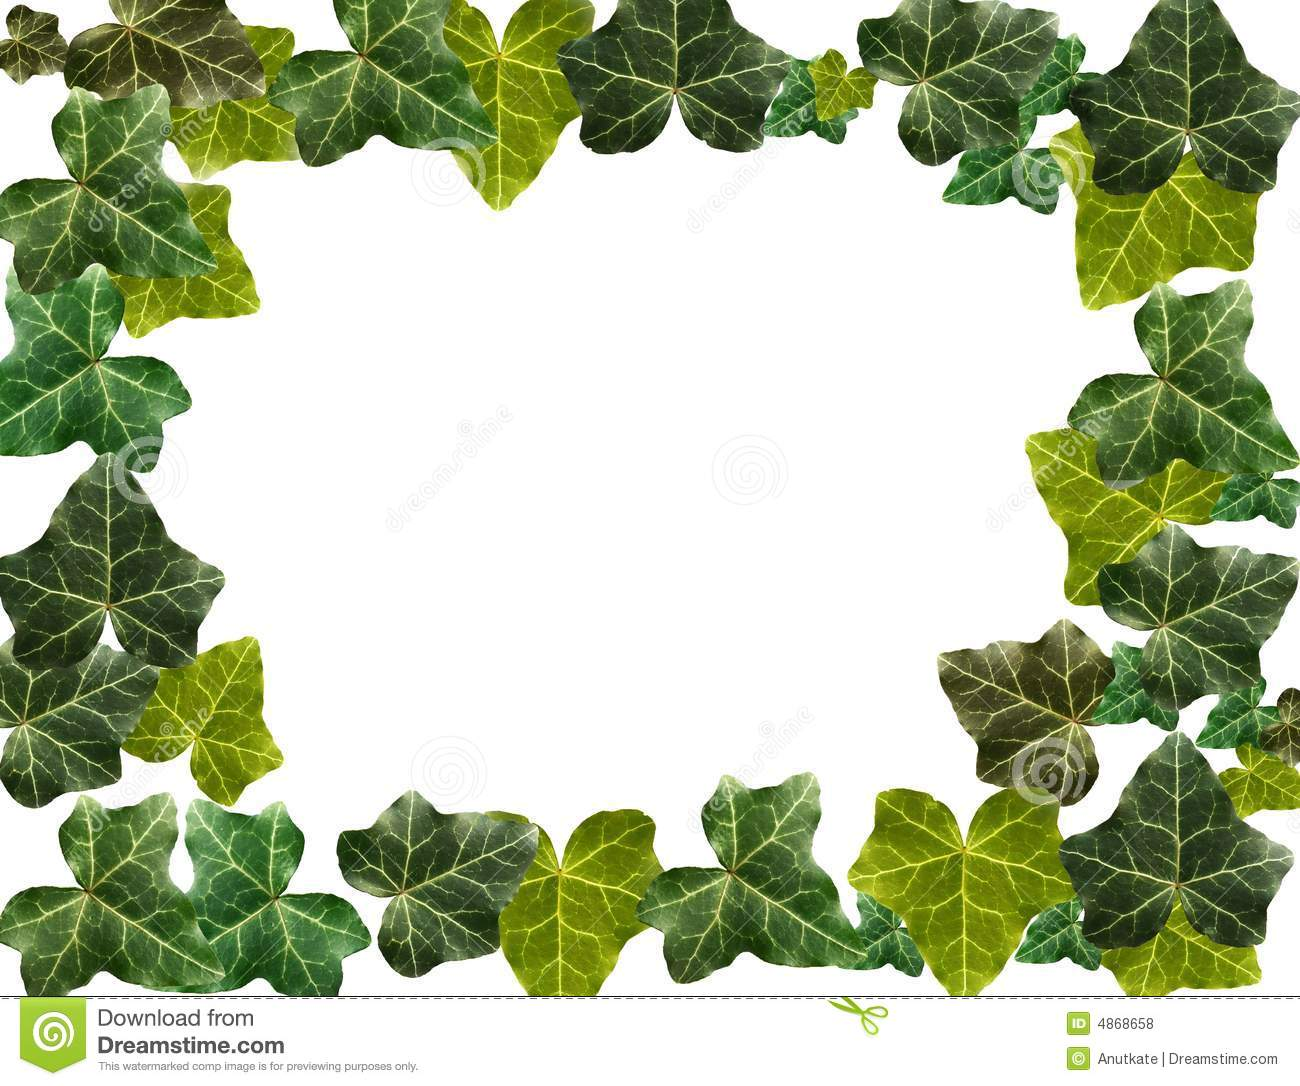 958 Ivy free clipart.